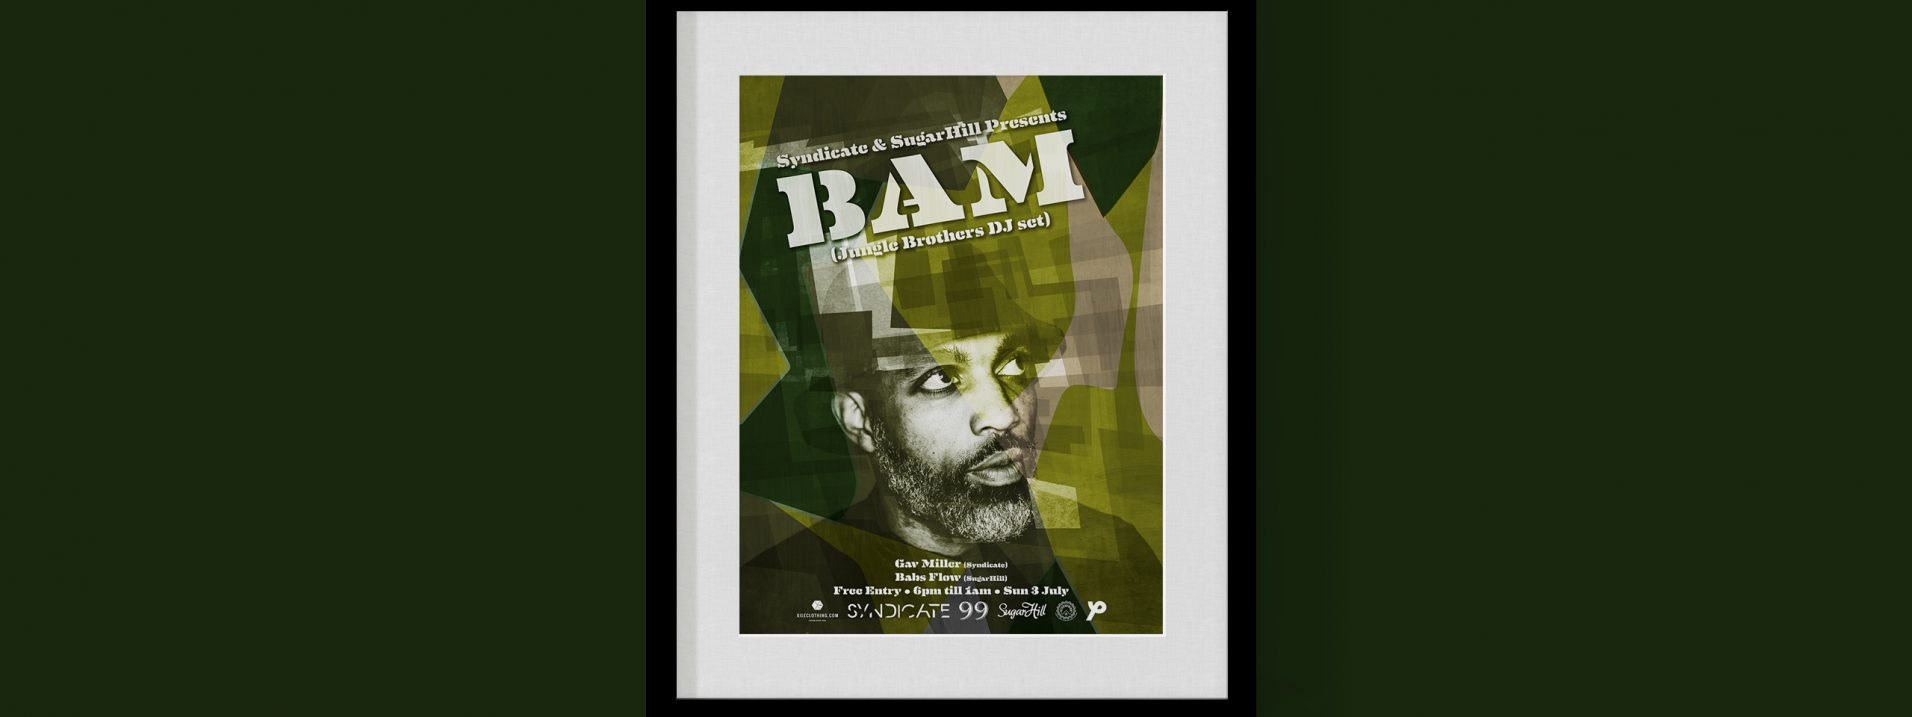 99 Hanover Street - BAM, Jungle Brothers poster designed by Dephined